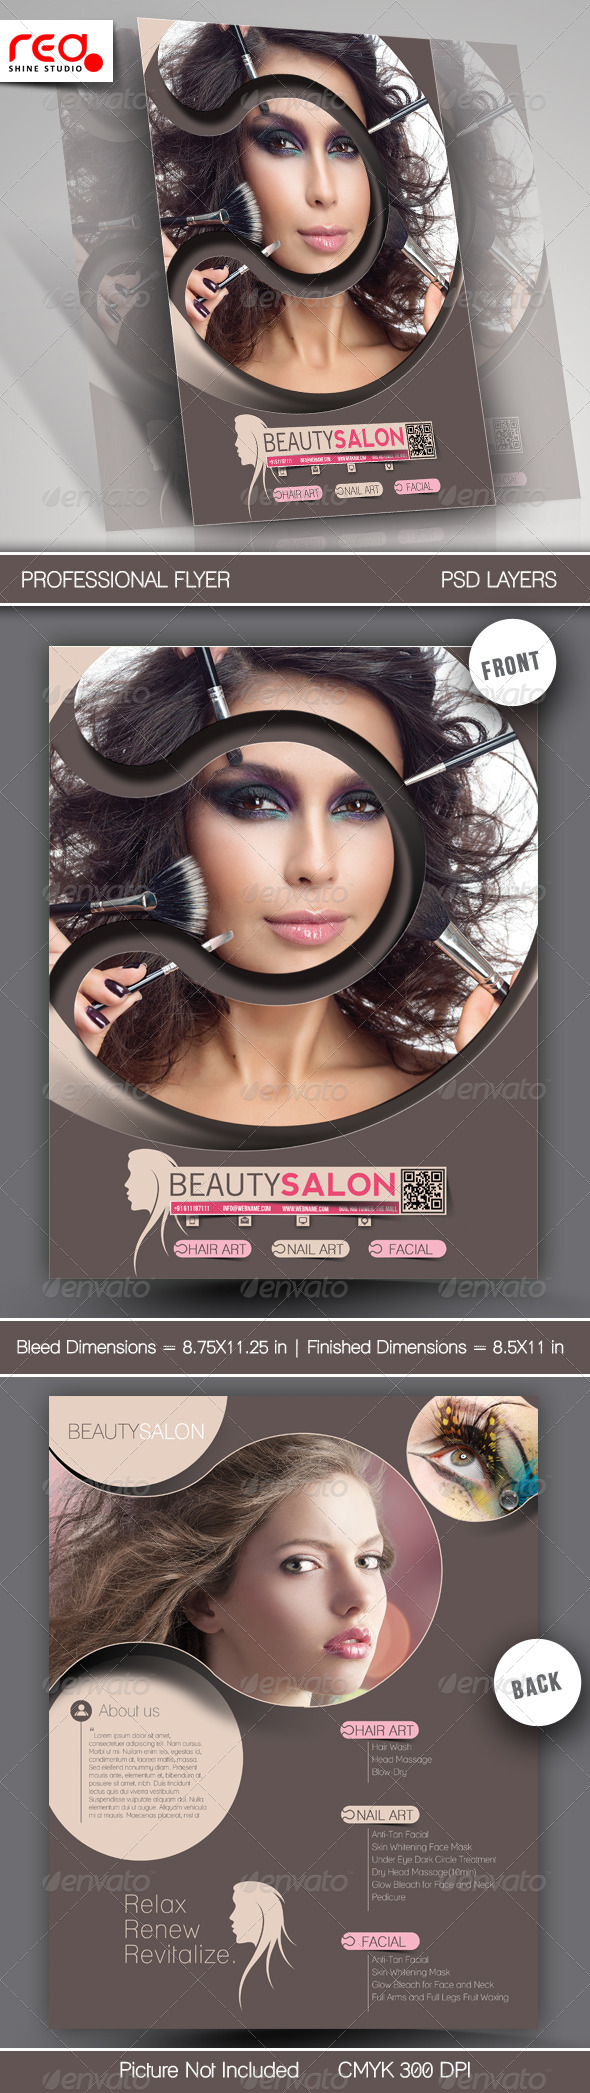 Beauty Salon Promotion Flyer Template